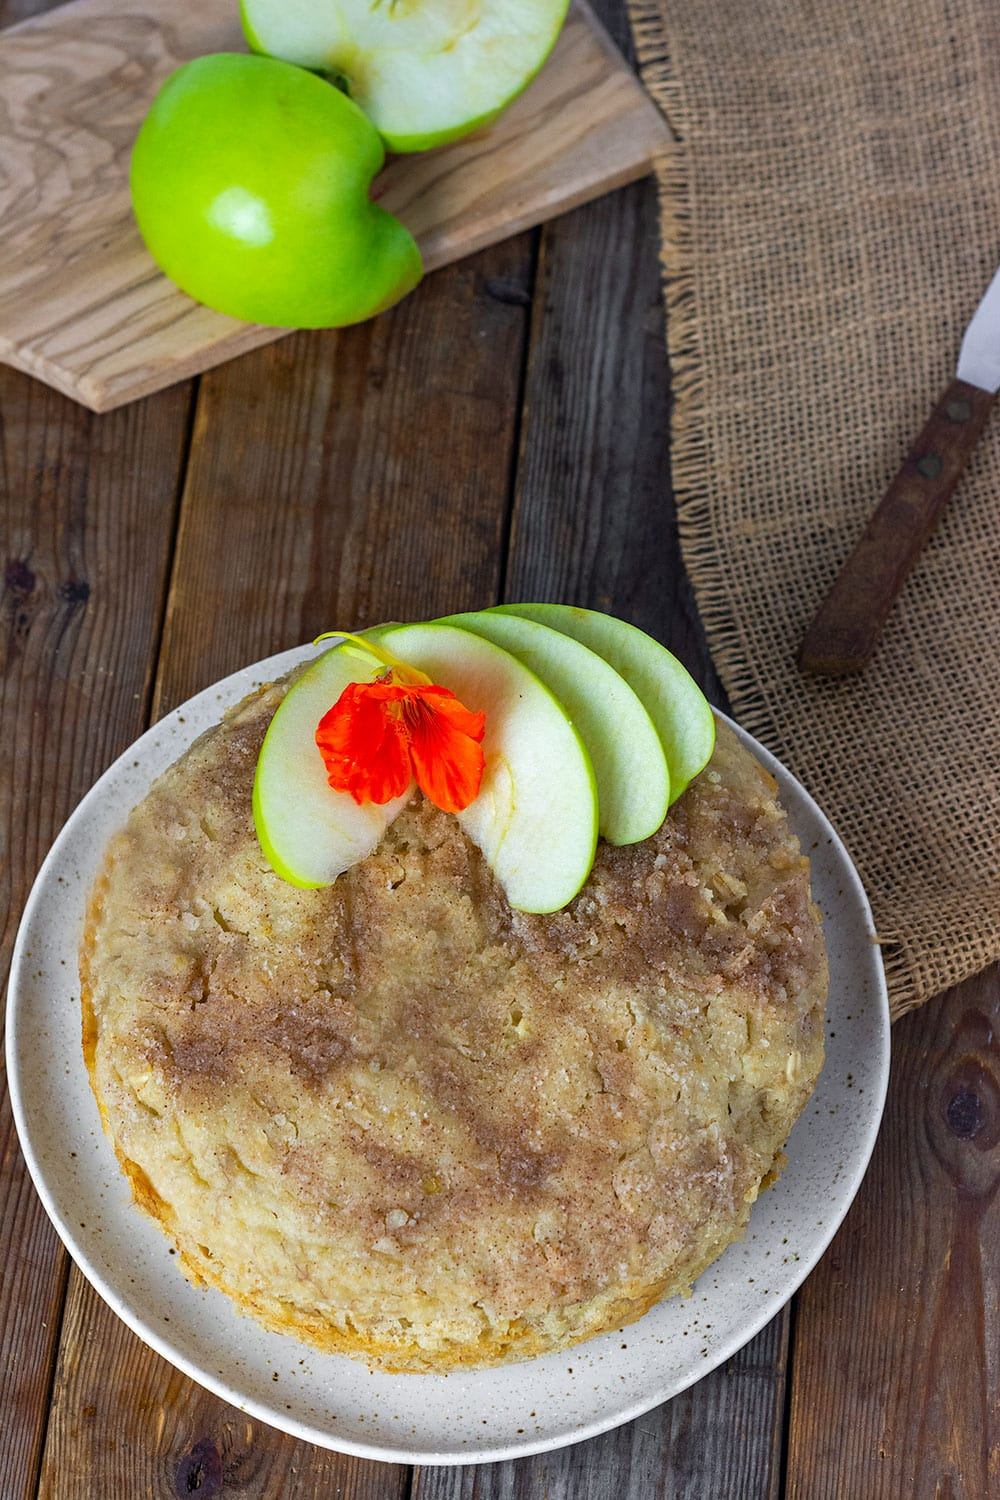 Overlay of Instant pot apple cake vegan, glutenfree, can on a beige plate with crumb topping, green apple slices and nasturtium flower with apple in the background on a cutting board